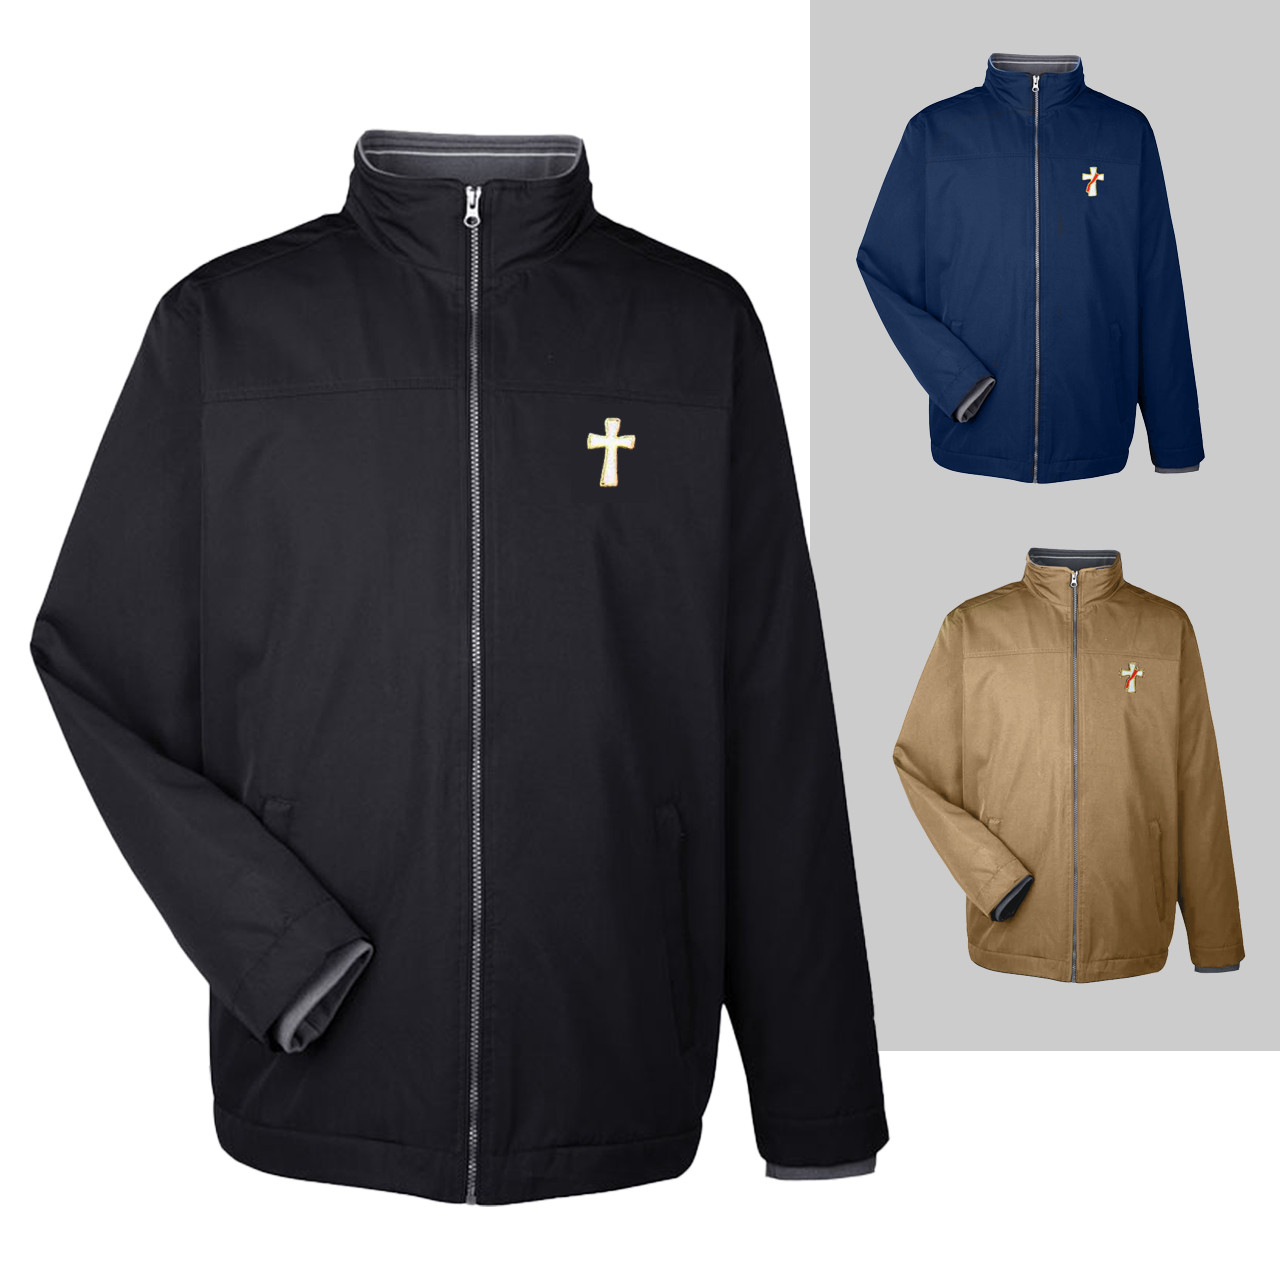 BV Men's All-Weather Clergy Jacket